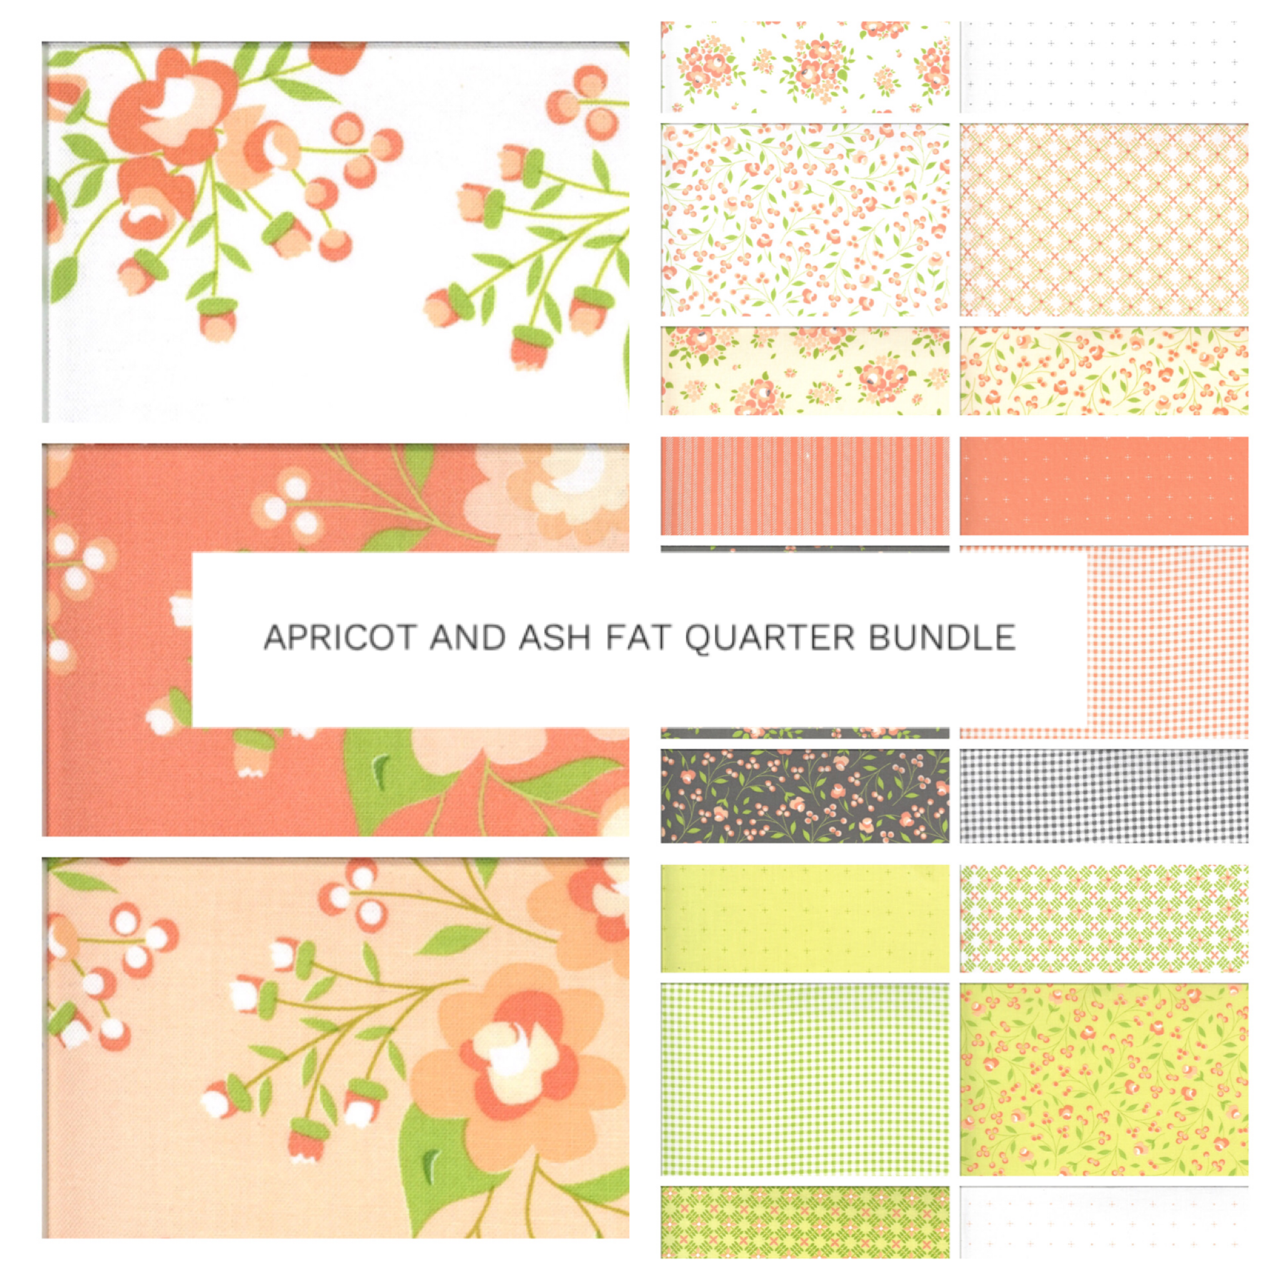 Apricot and Ash Fat Quarter Bundle